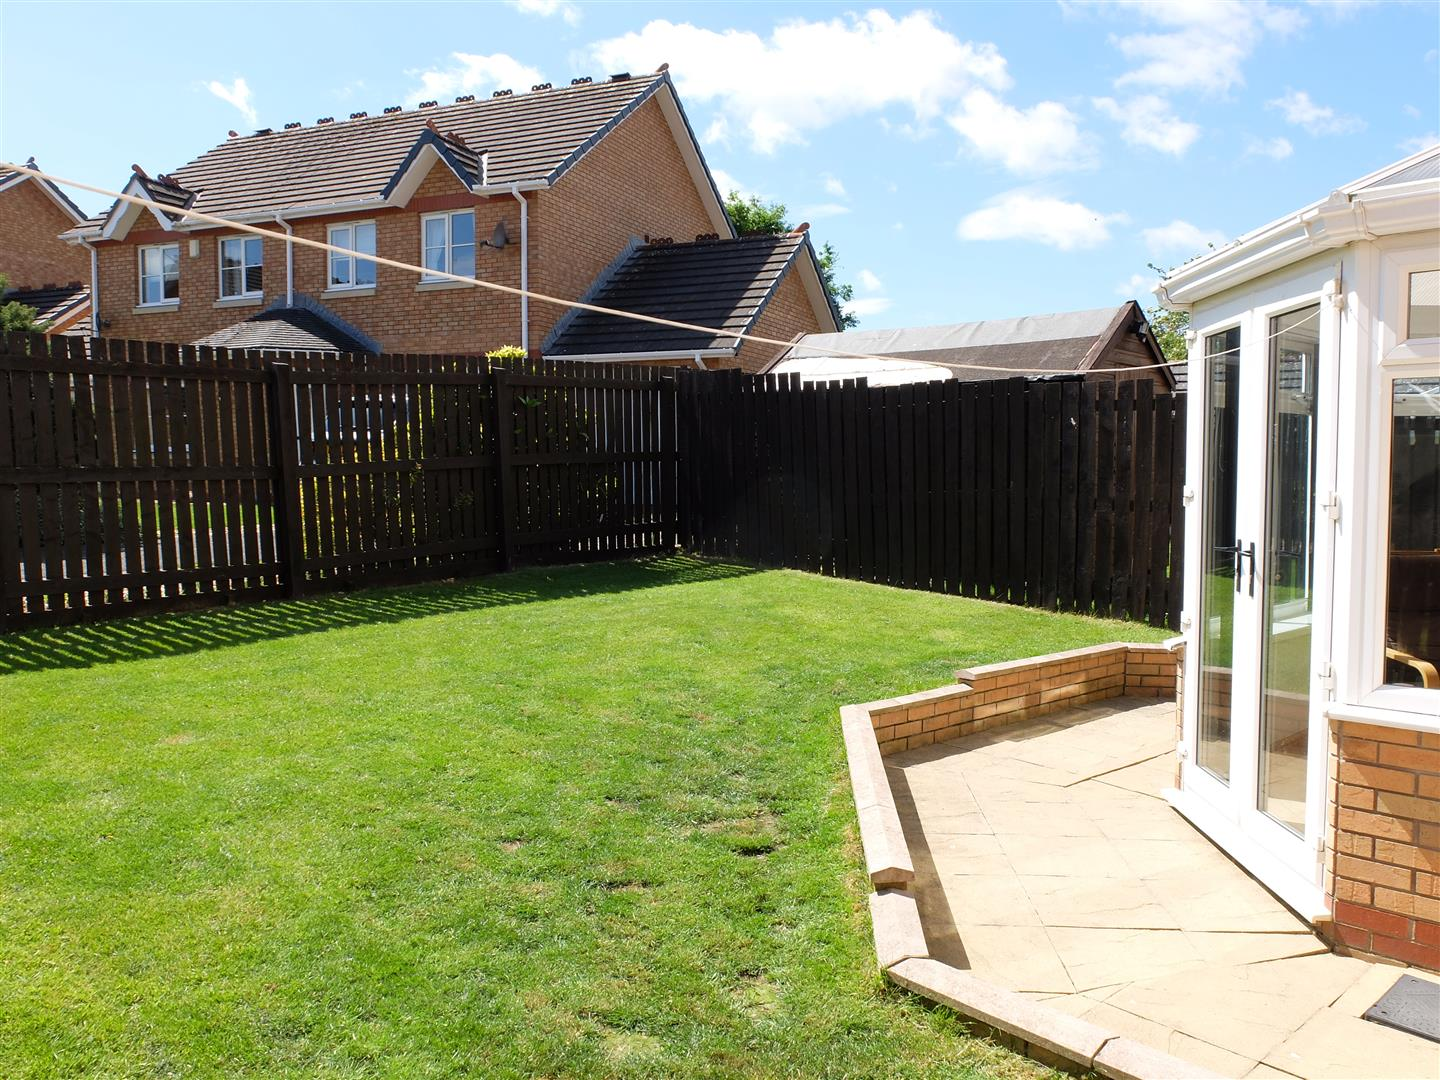 3 Bedrooms House - Semi-Detached For Sale 91 Larch Drive Carlisle